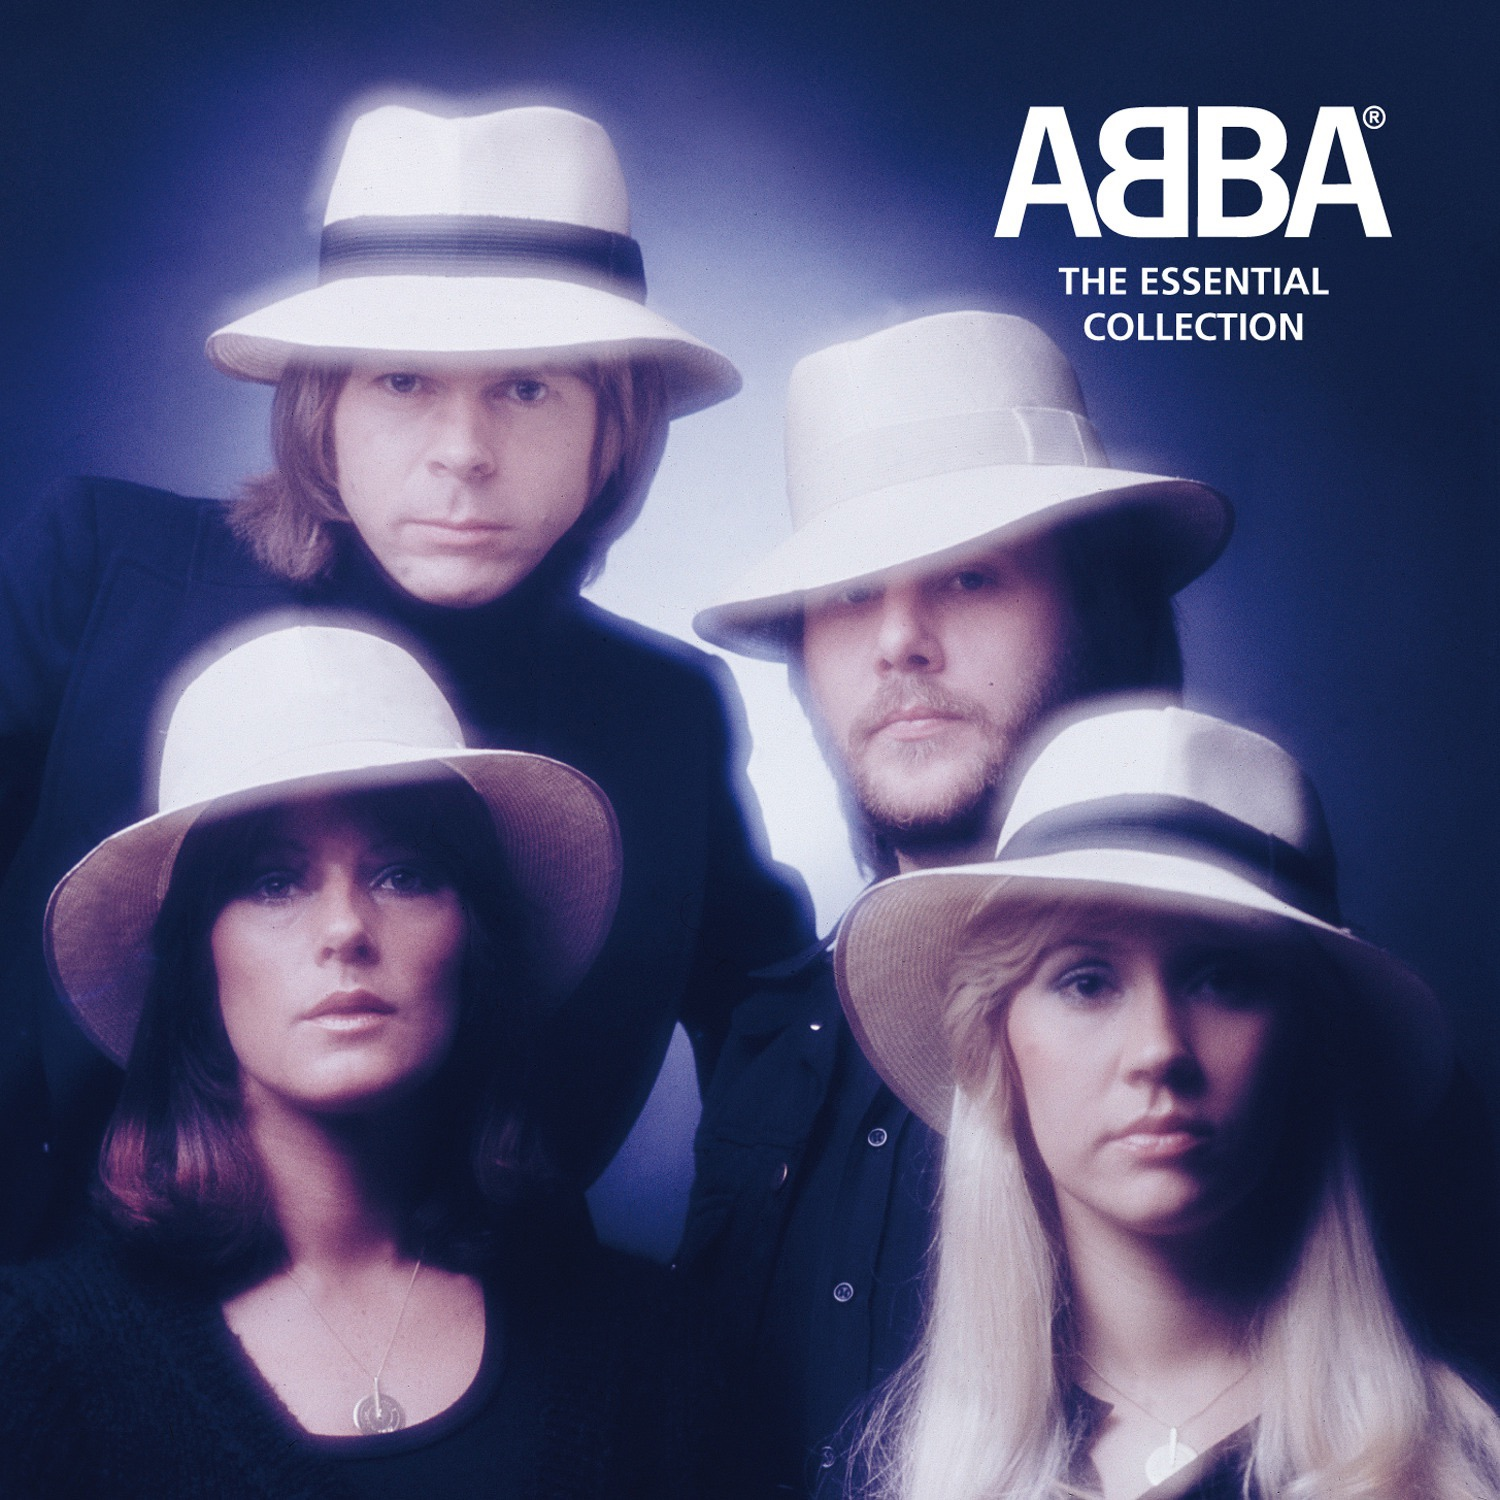 Abba album The Essential Collection